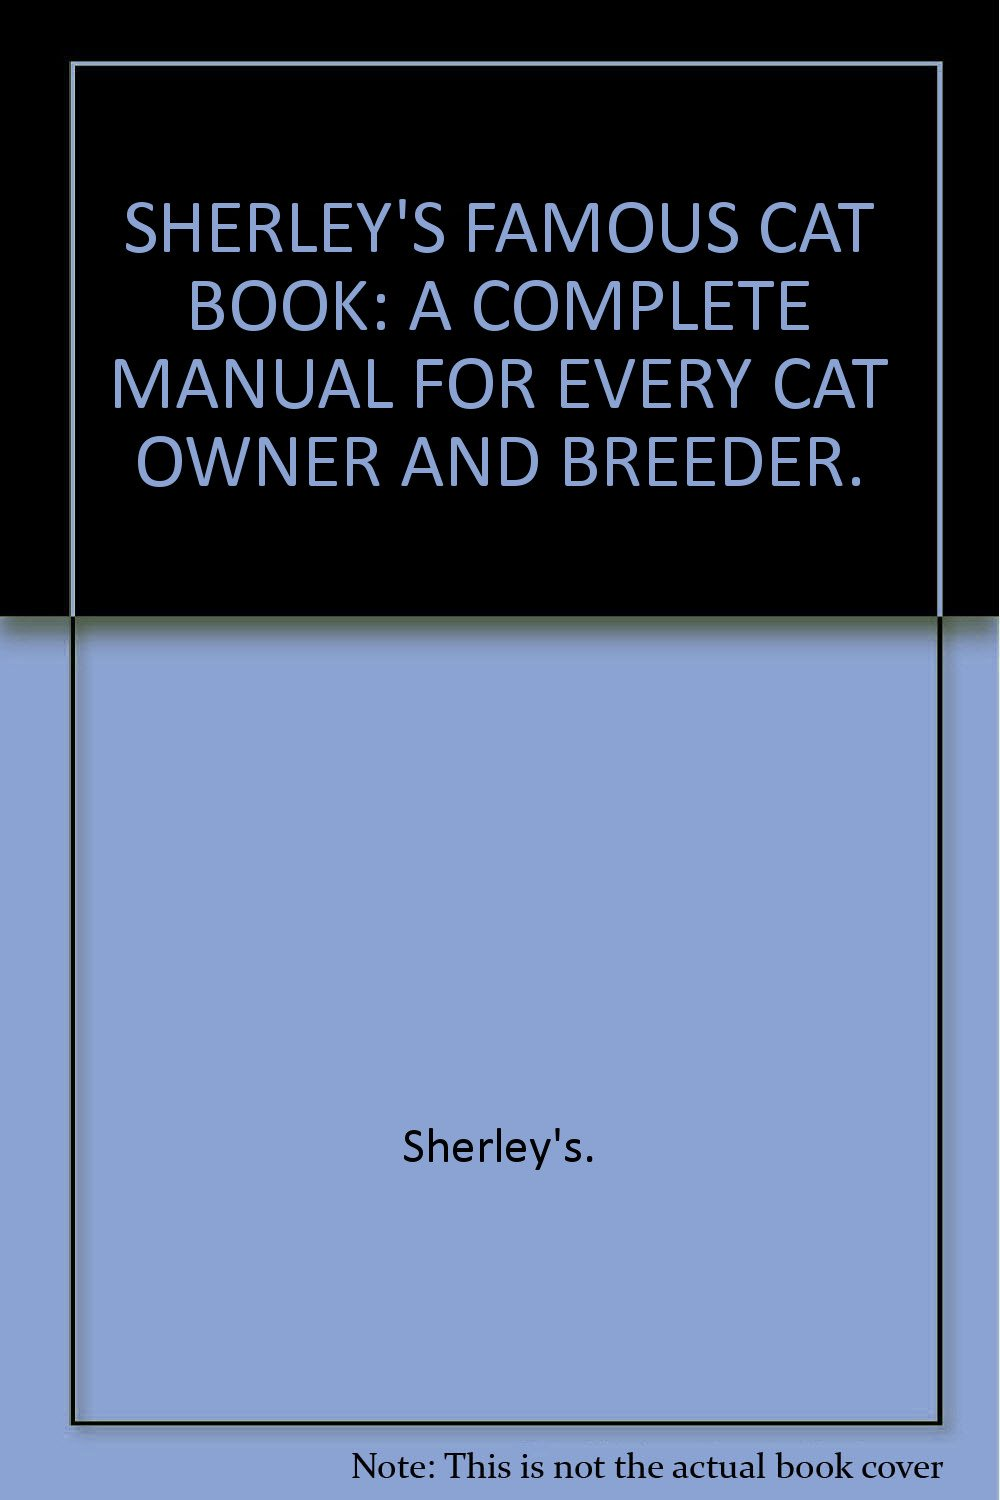 Sherley's famous cat book: A complete manual for cat owners, breeders, exhibitors, catteries and others in the treatment and care of cats in health and sickness